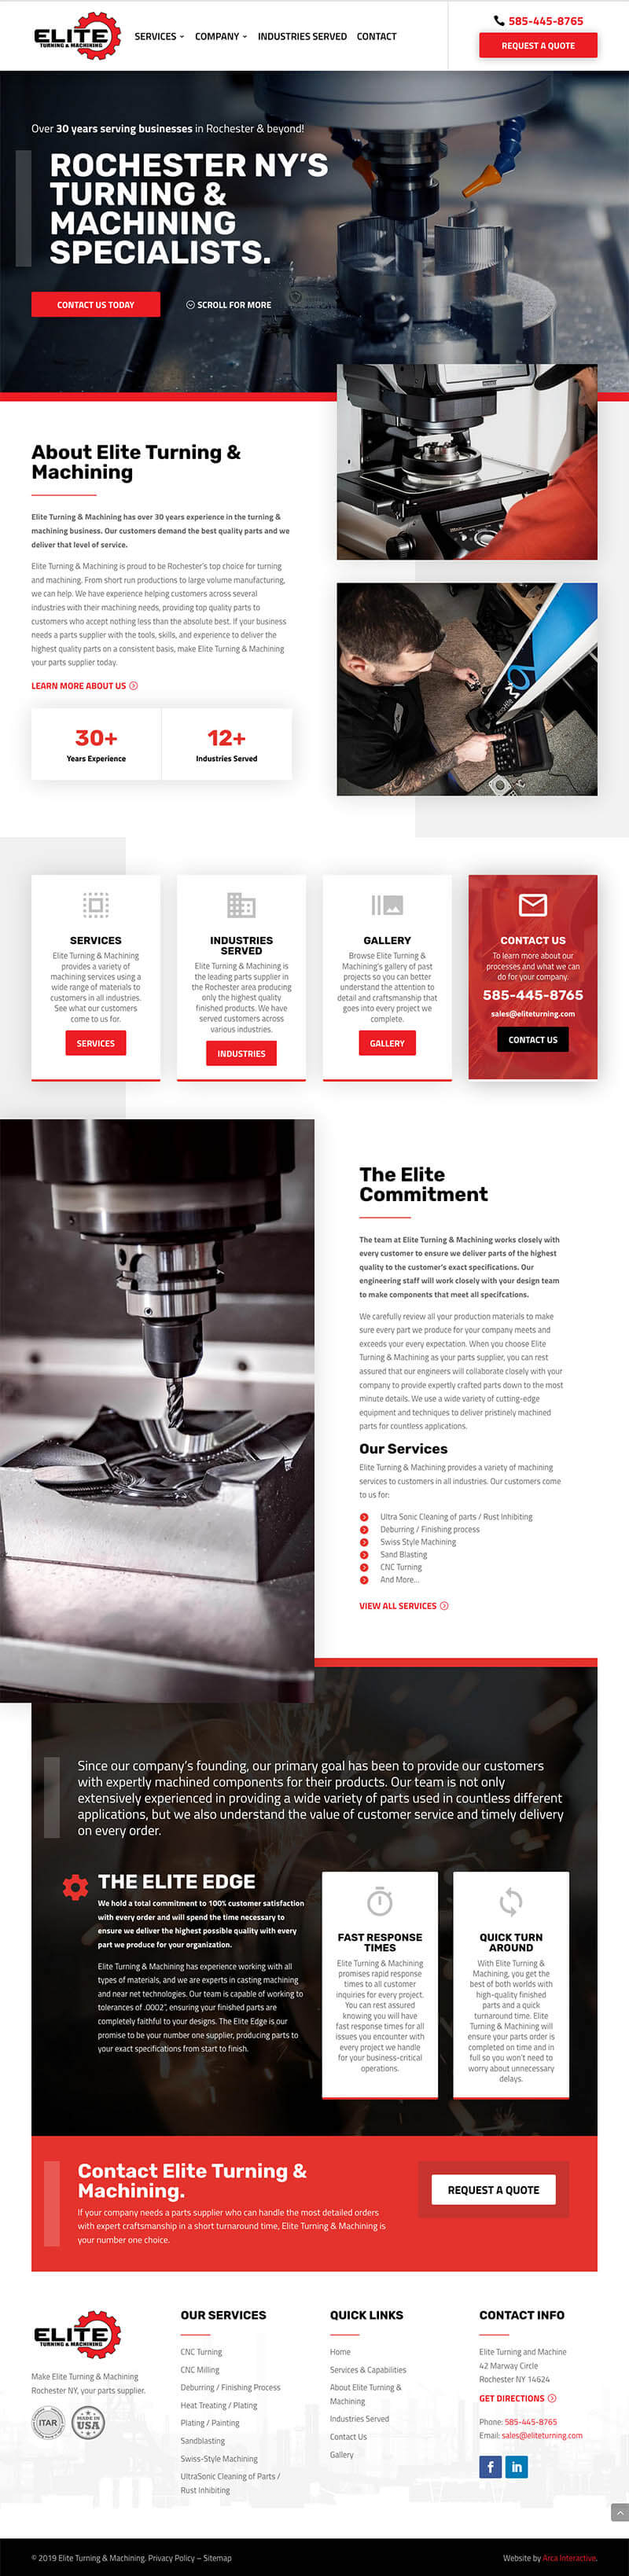 Elite Turning Machining Website Development